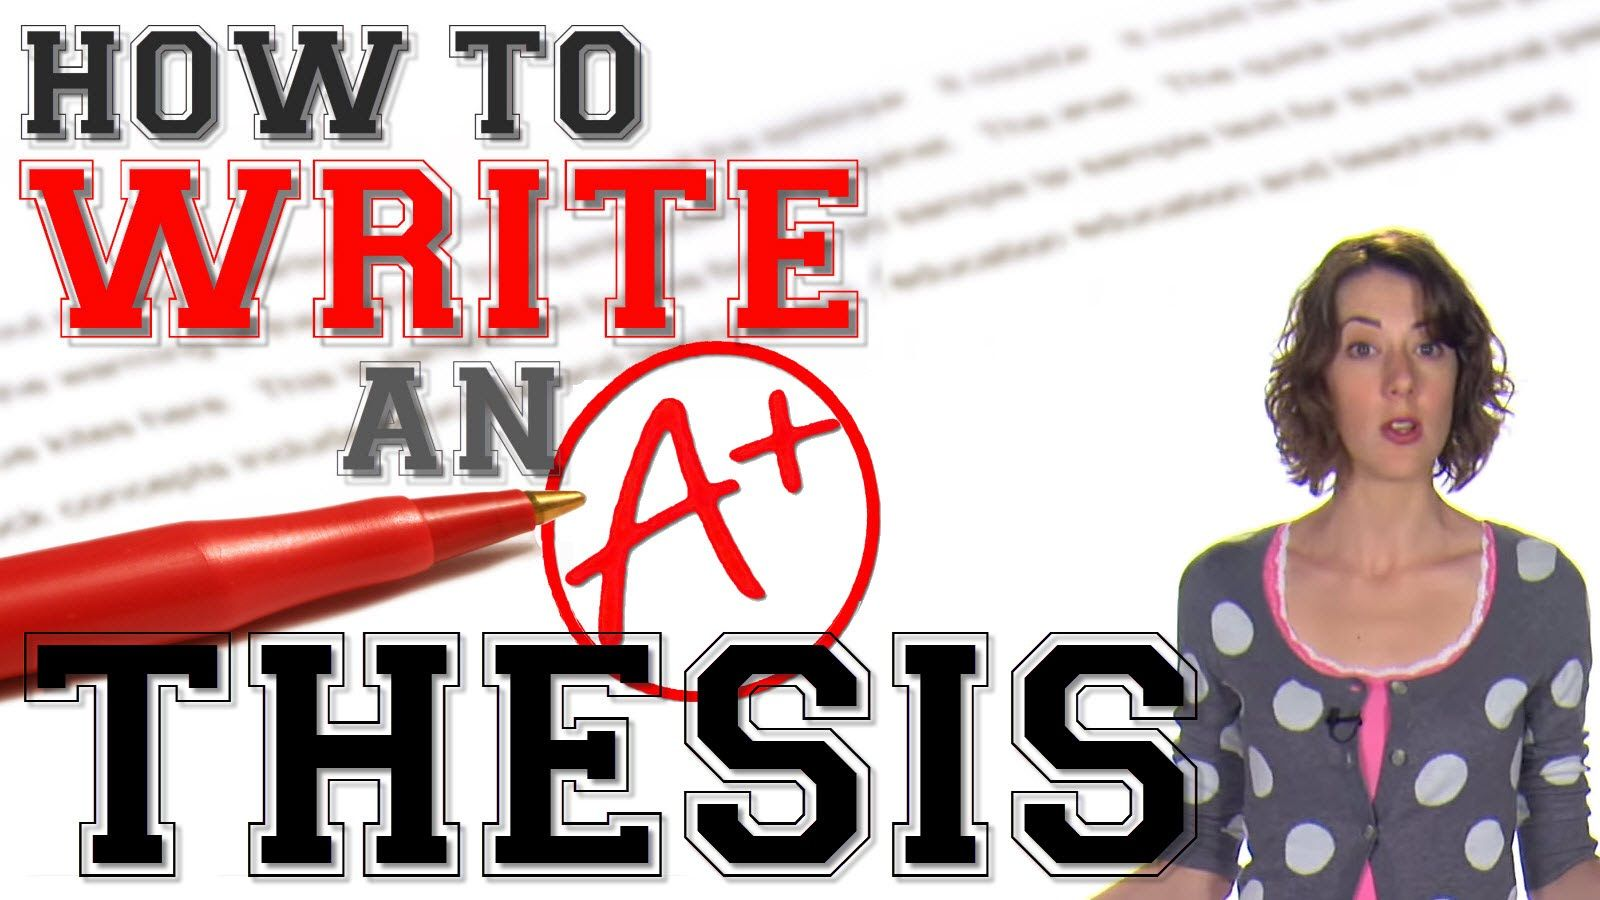 how to construct a thesis statement How to write a thesis statement almost all of us—even if we don't do it consciously— look early in an essay for a one- or two-sentence condensation of the argument or analysis that is to follow we refer to that condensation as a thesis statement why should your essay contain a thesis.